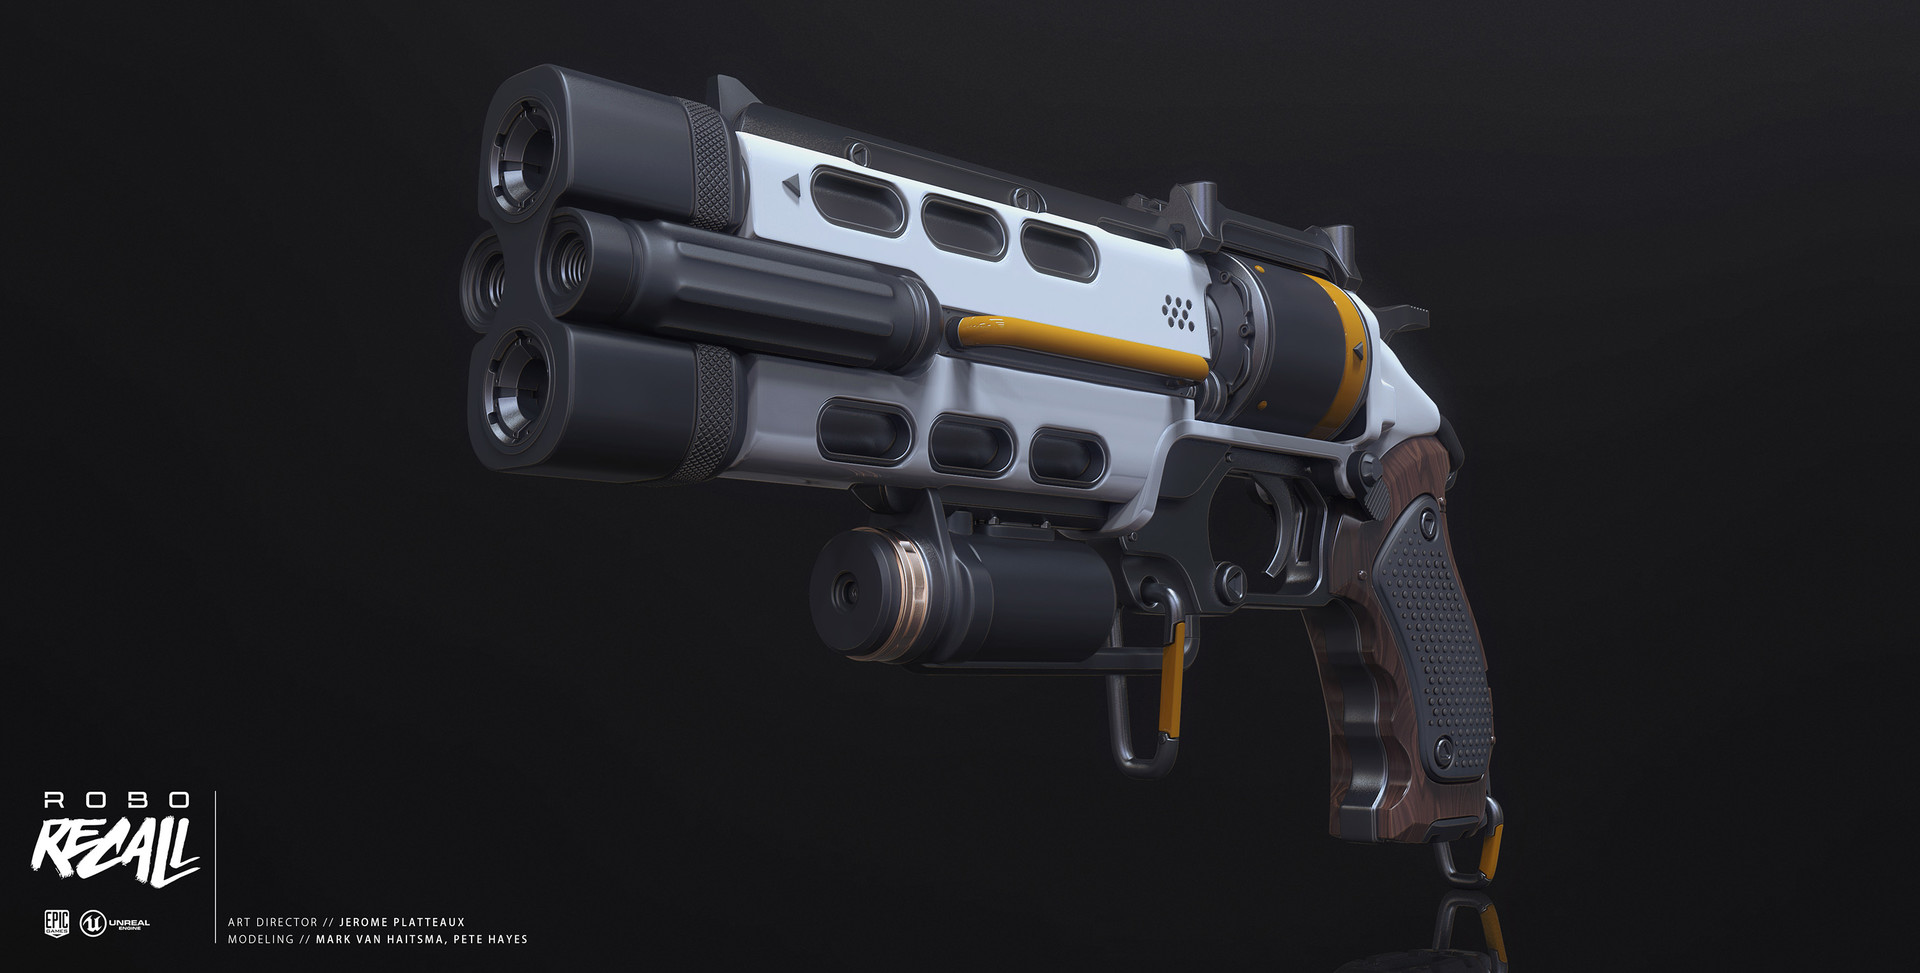 Mark van haitsma revolver front perspective attachments final